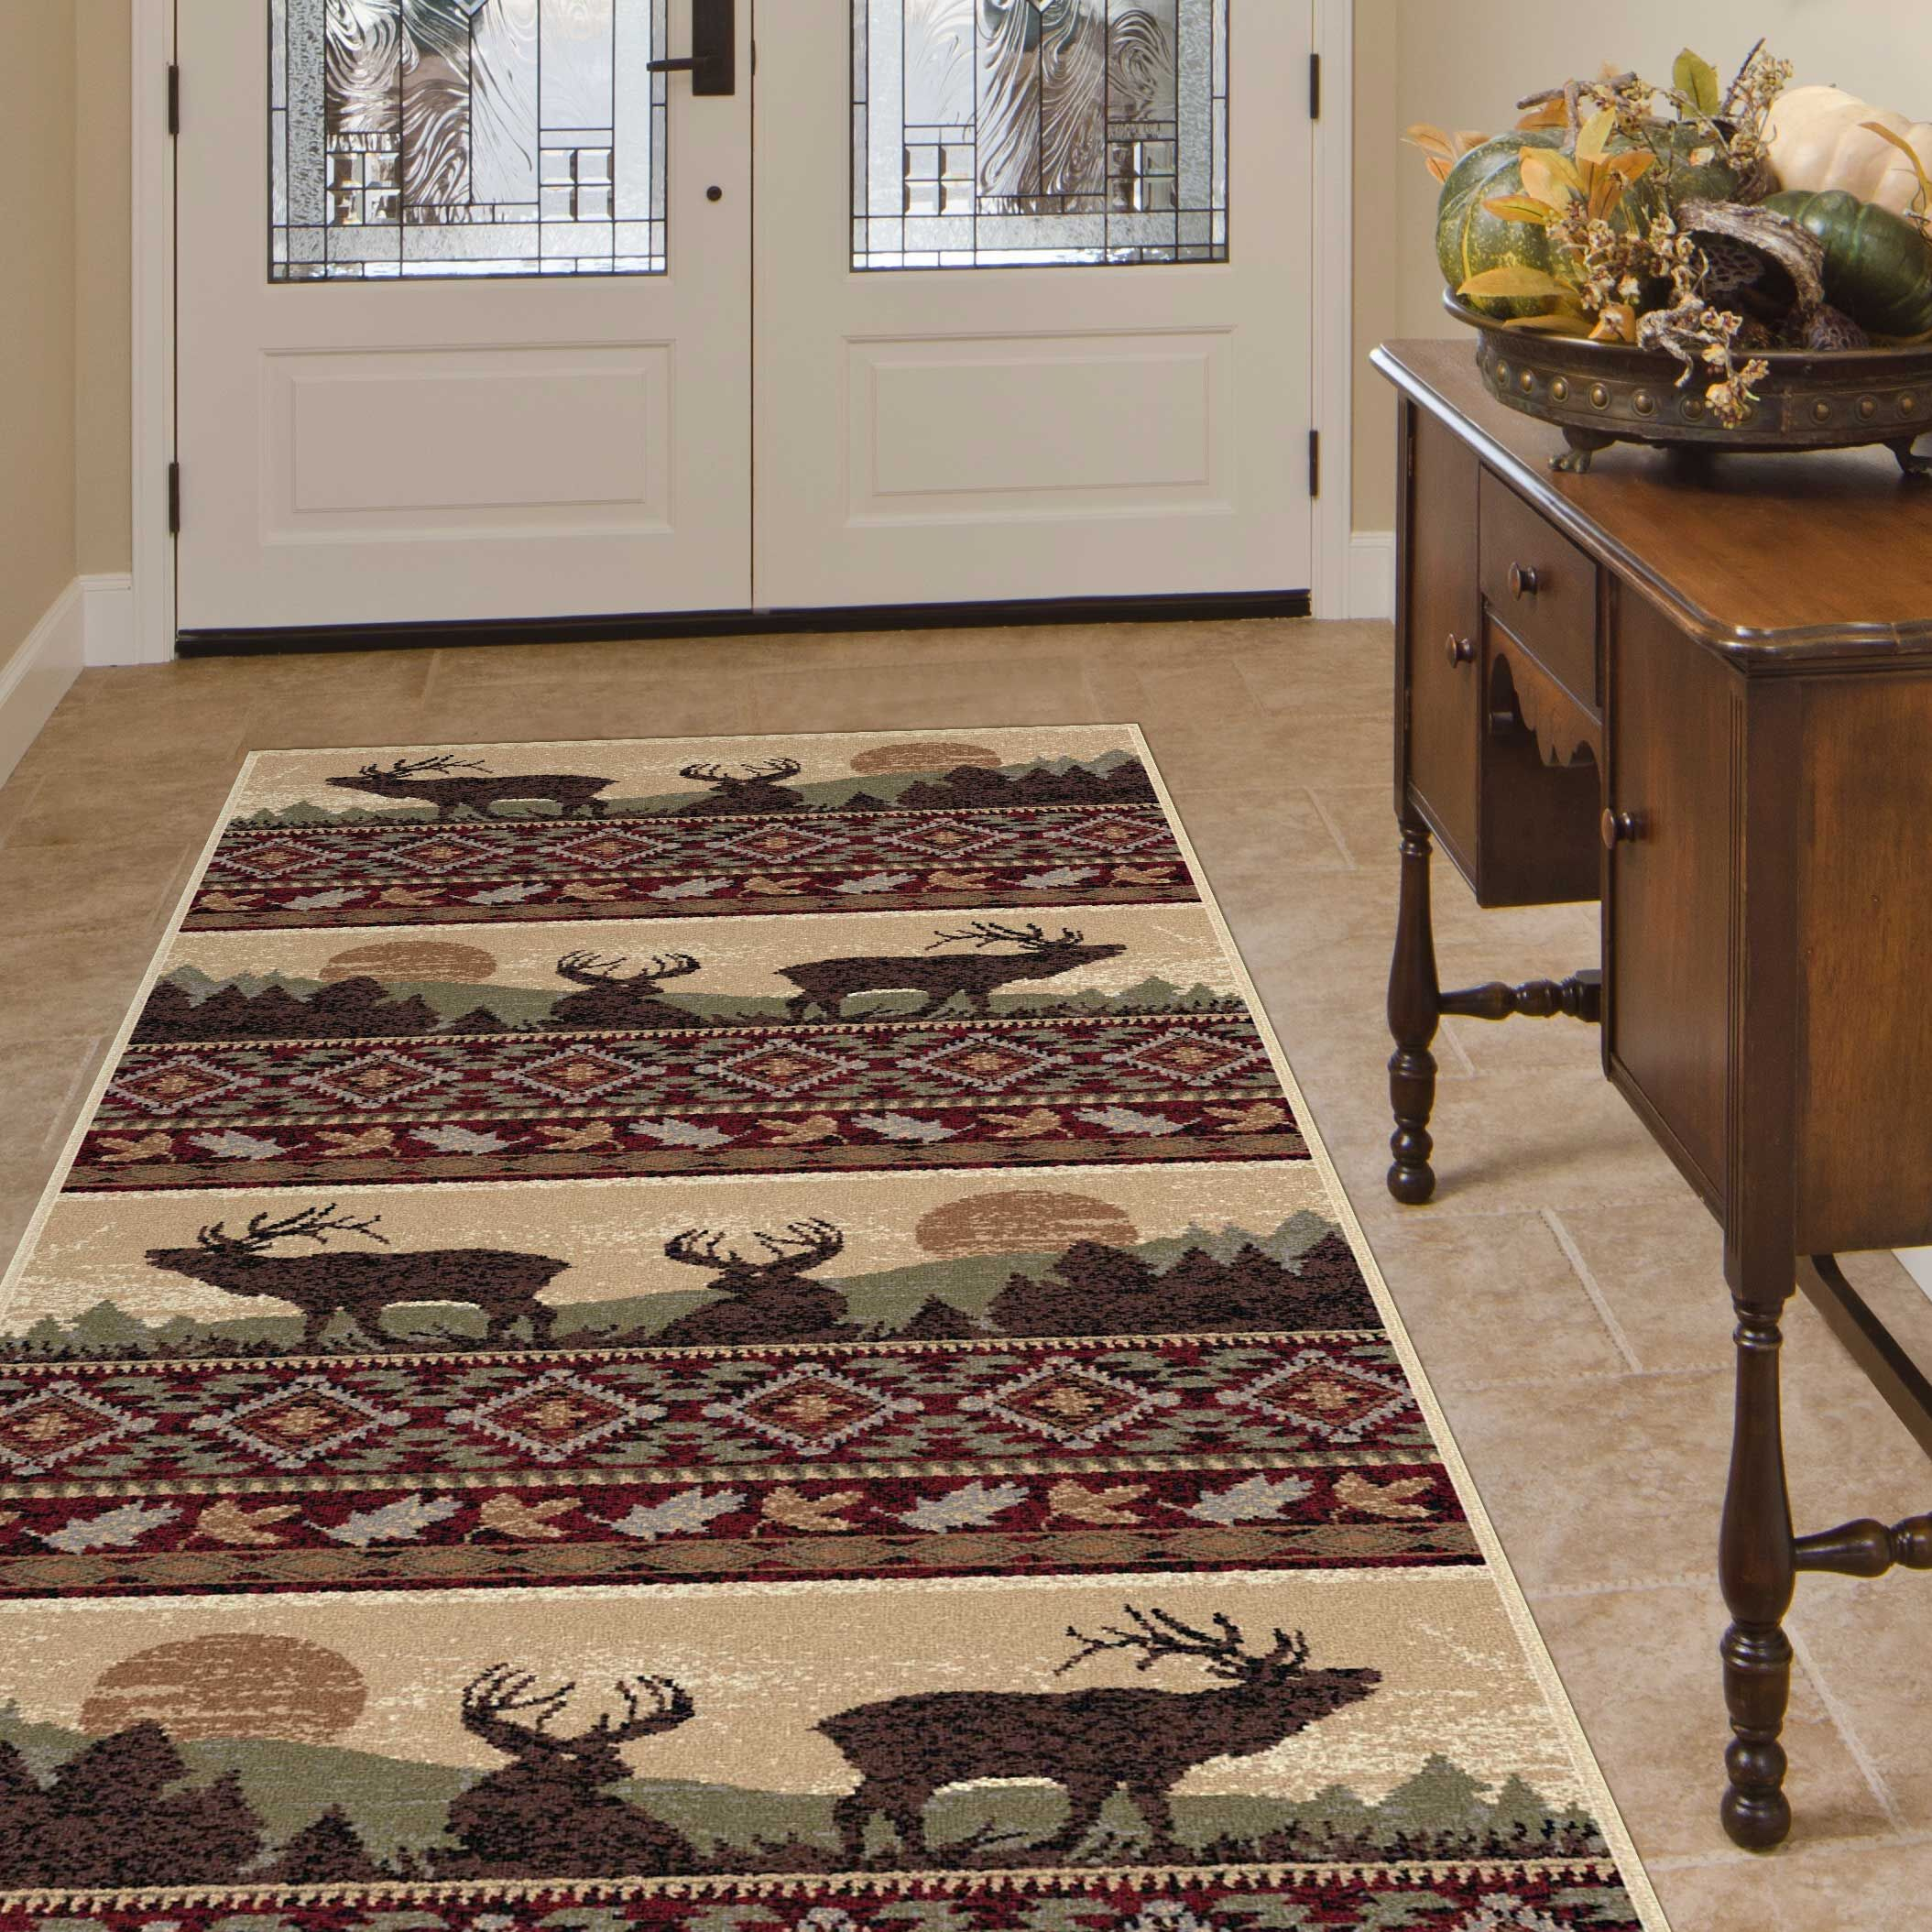 Alers Red/Brown Area Rug Rug Size: 7'10'' x 10'3''